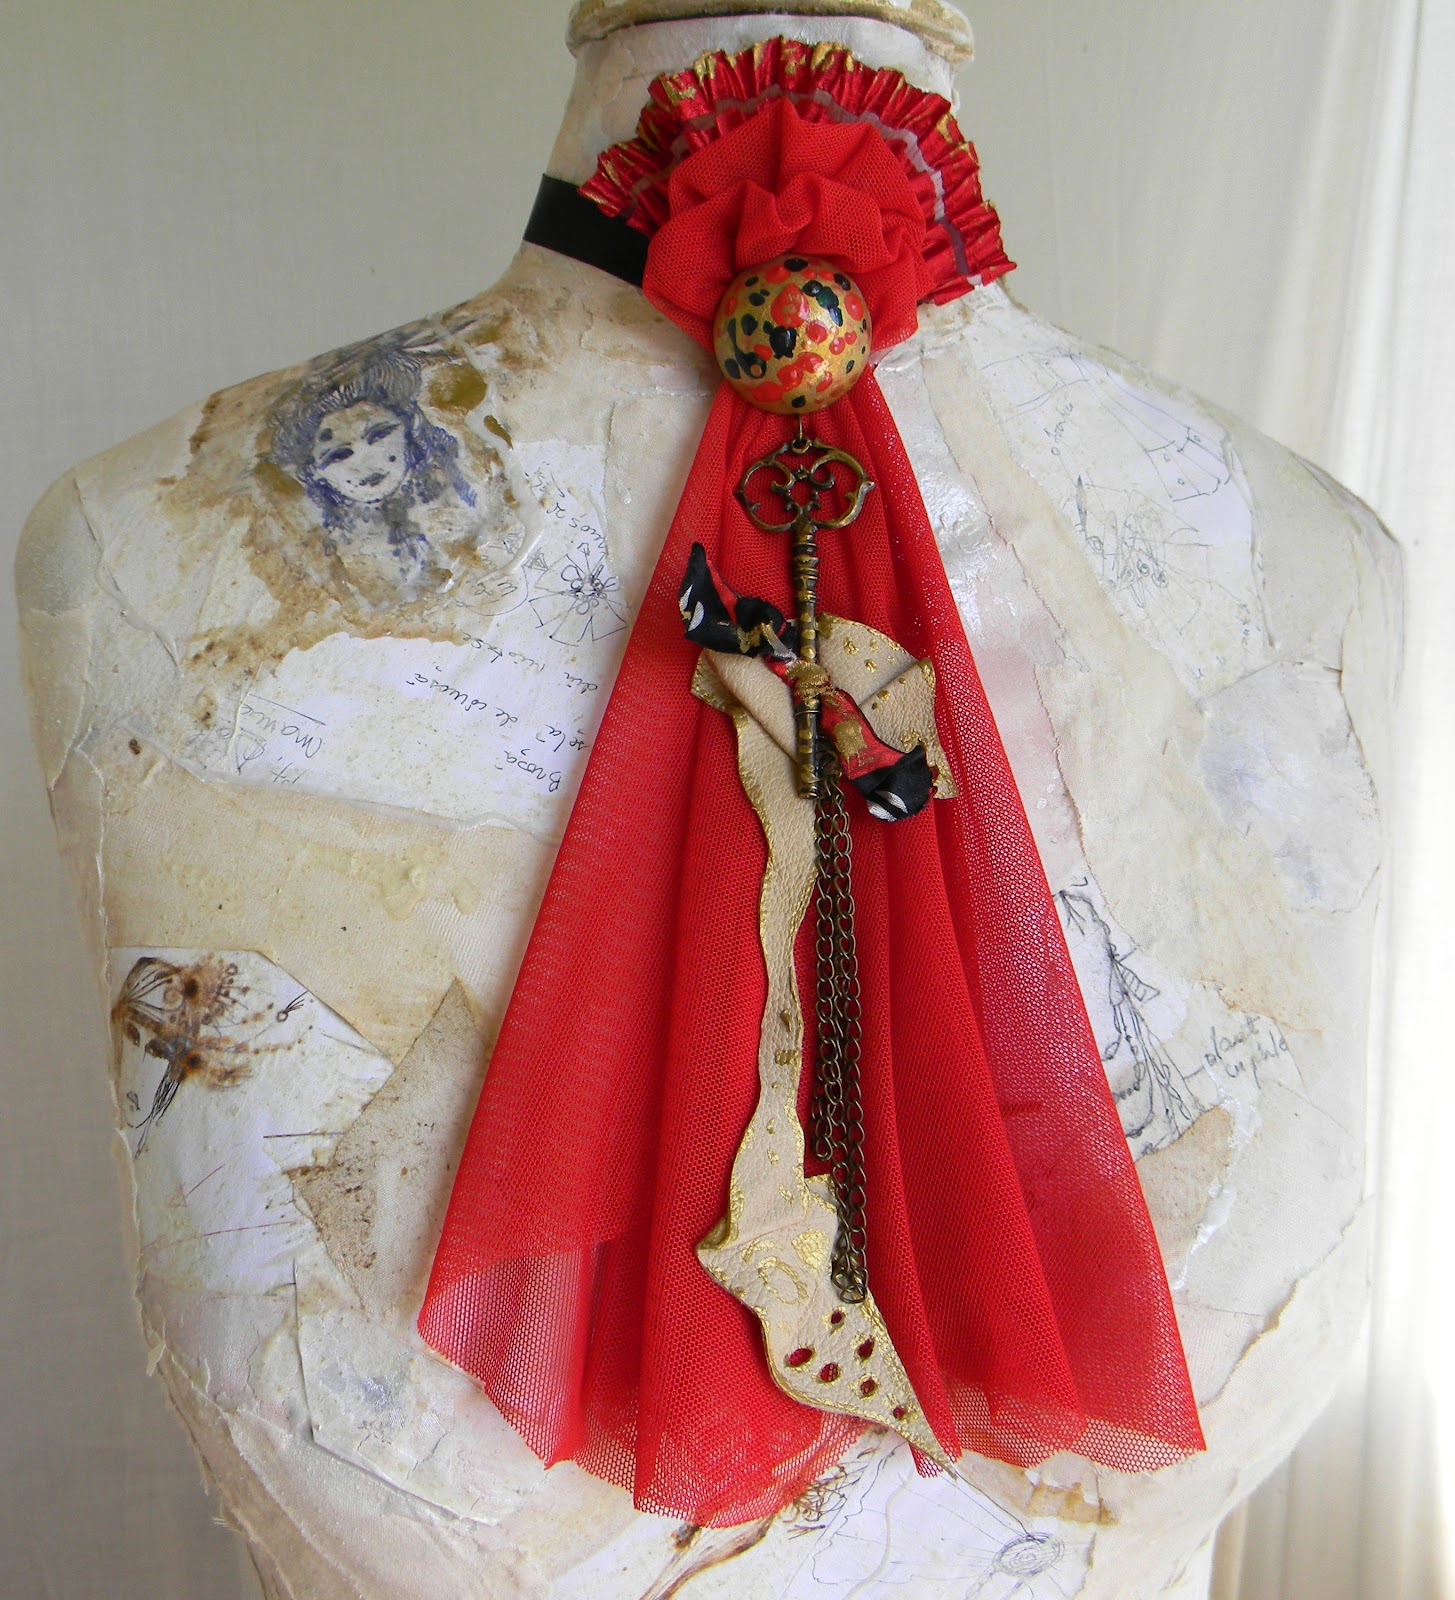 Handmade Jabot/Choker/Bib/Red Vintage Couture/Moulin Rouge Inspired